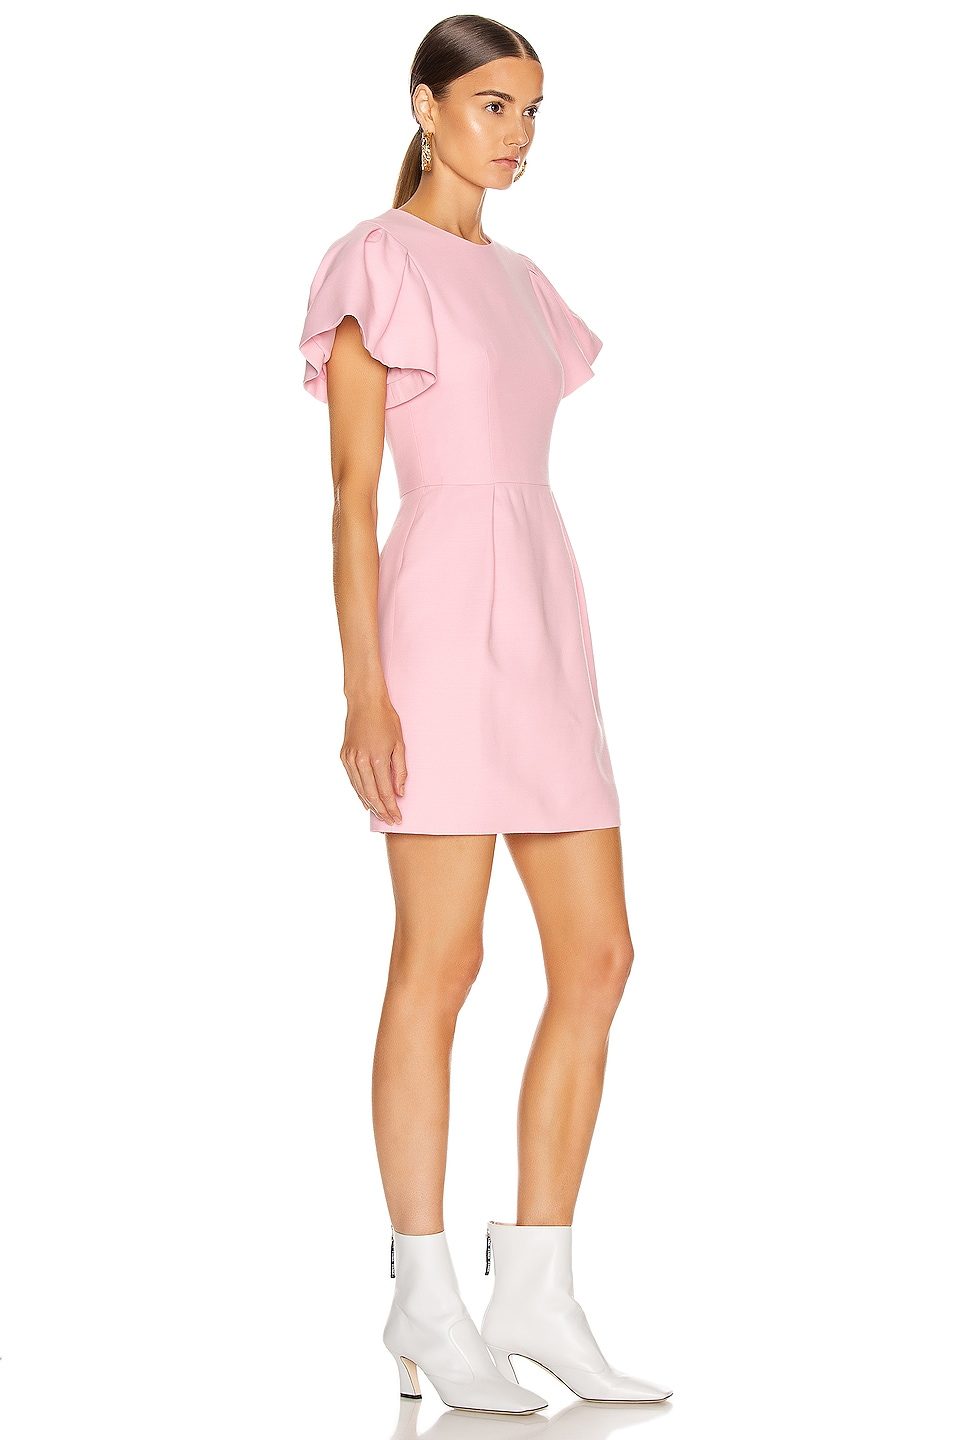 Image 2 of Alexander McQueen Short Sleeve Mini Dress in Sugar Pink